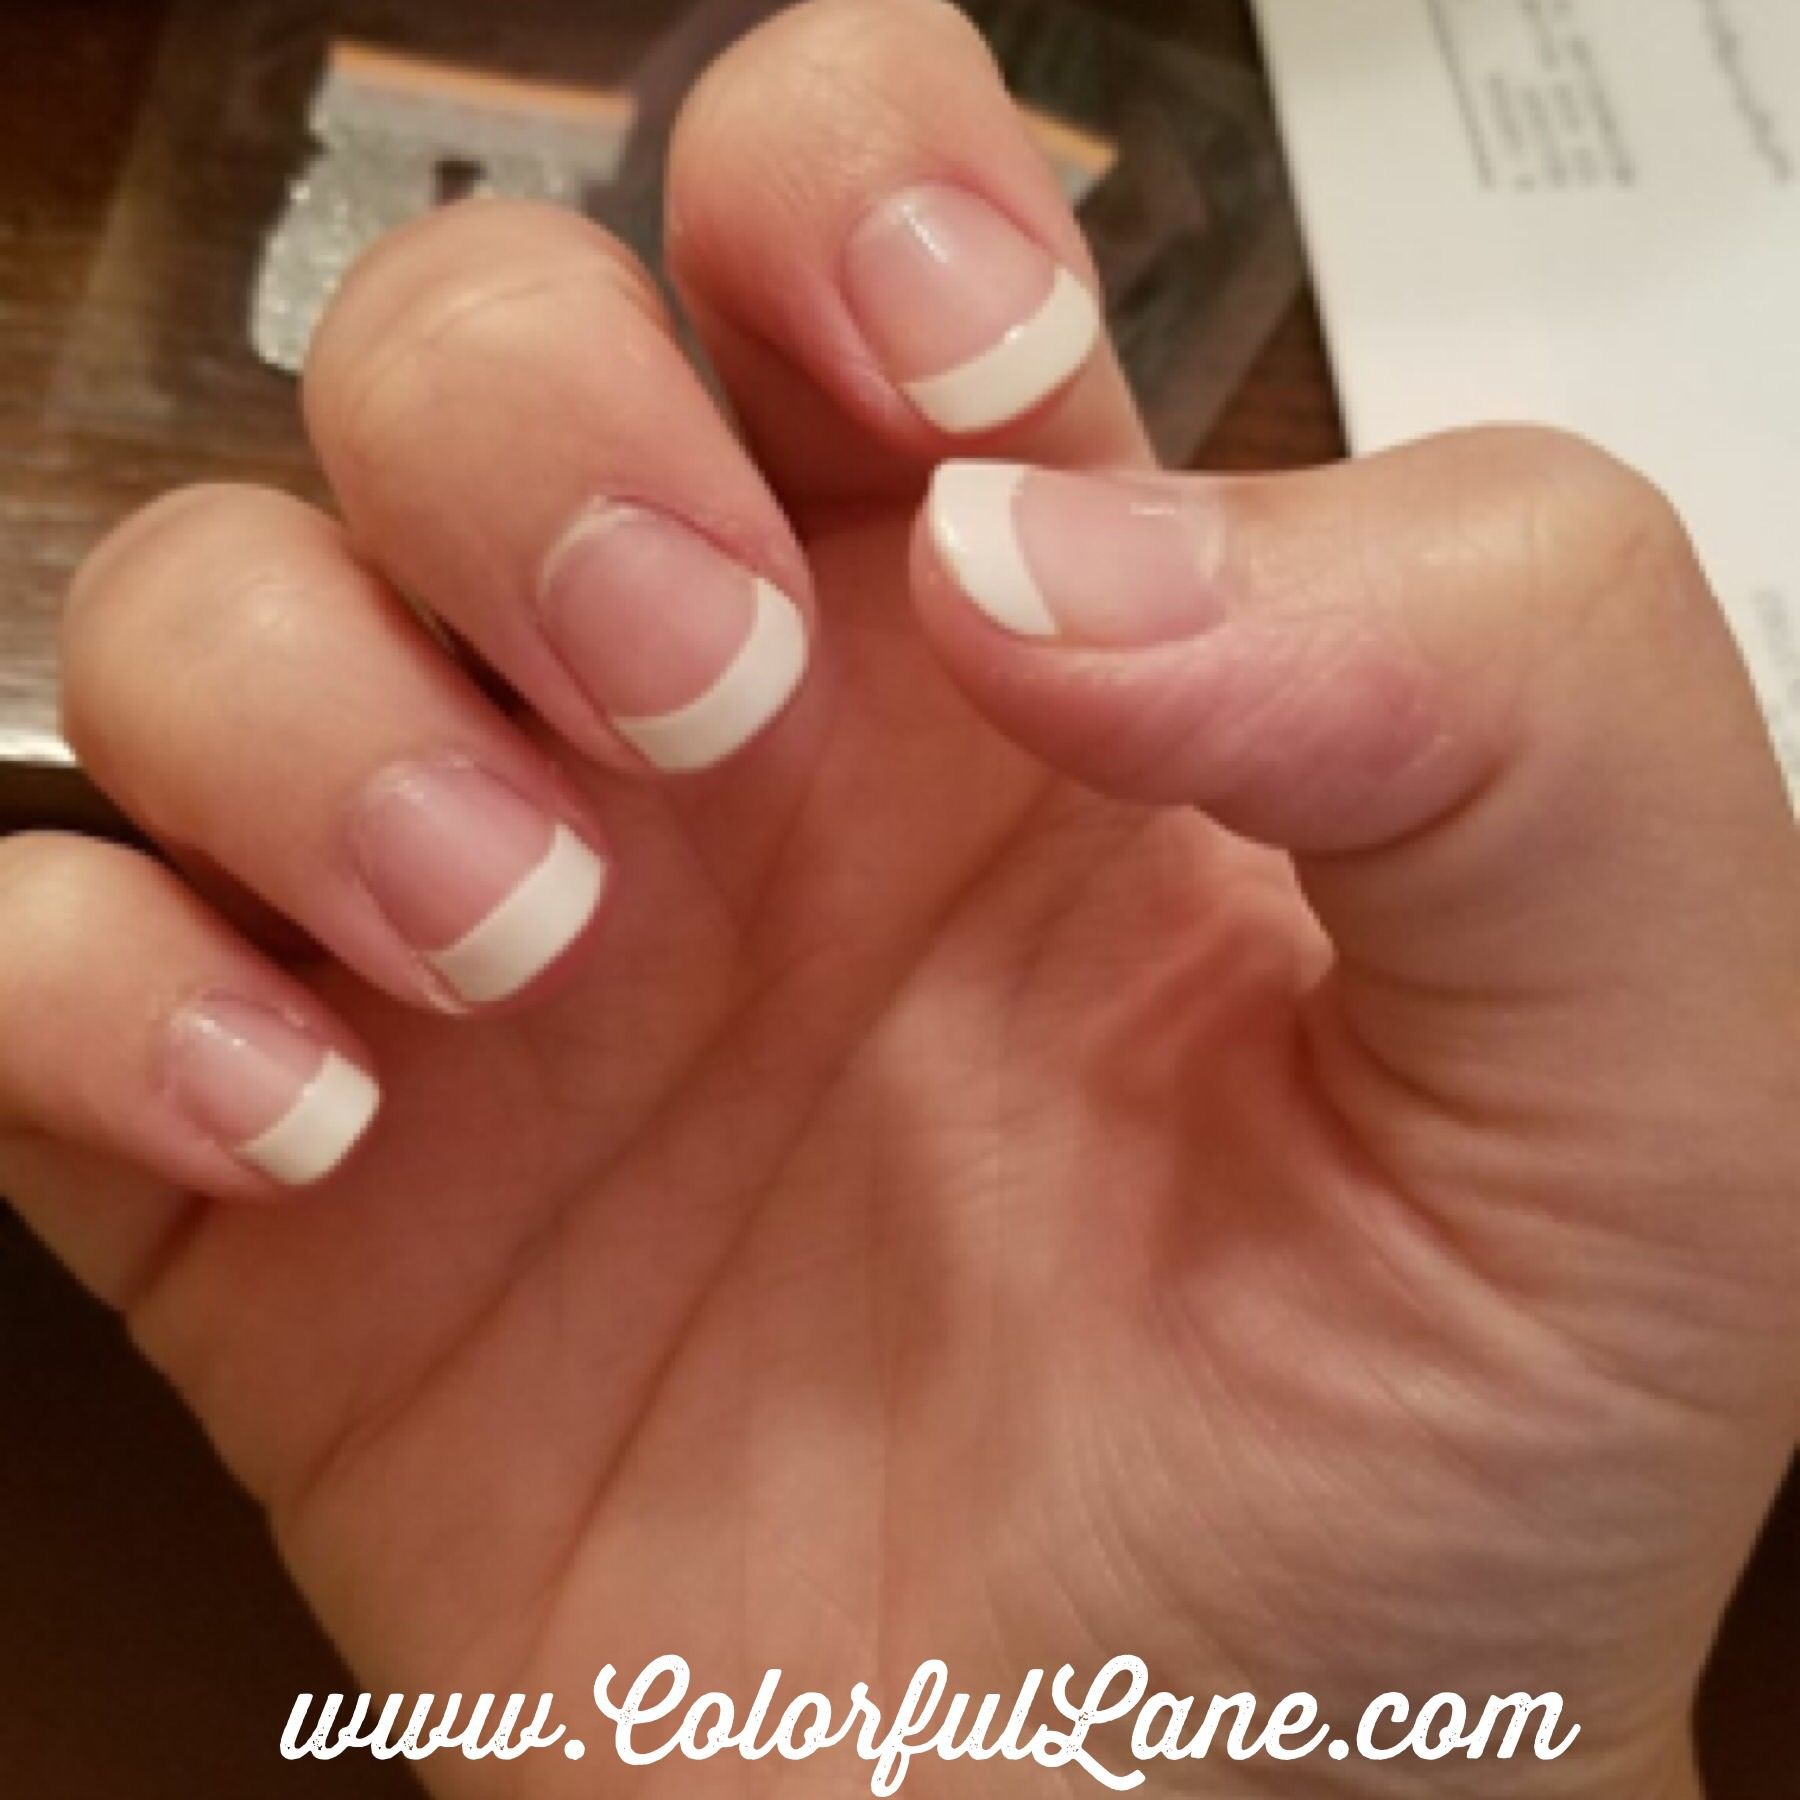 Color Street has 4 beautiful French manicure nail strip sets. Find ...